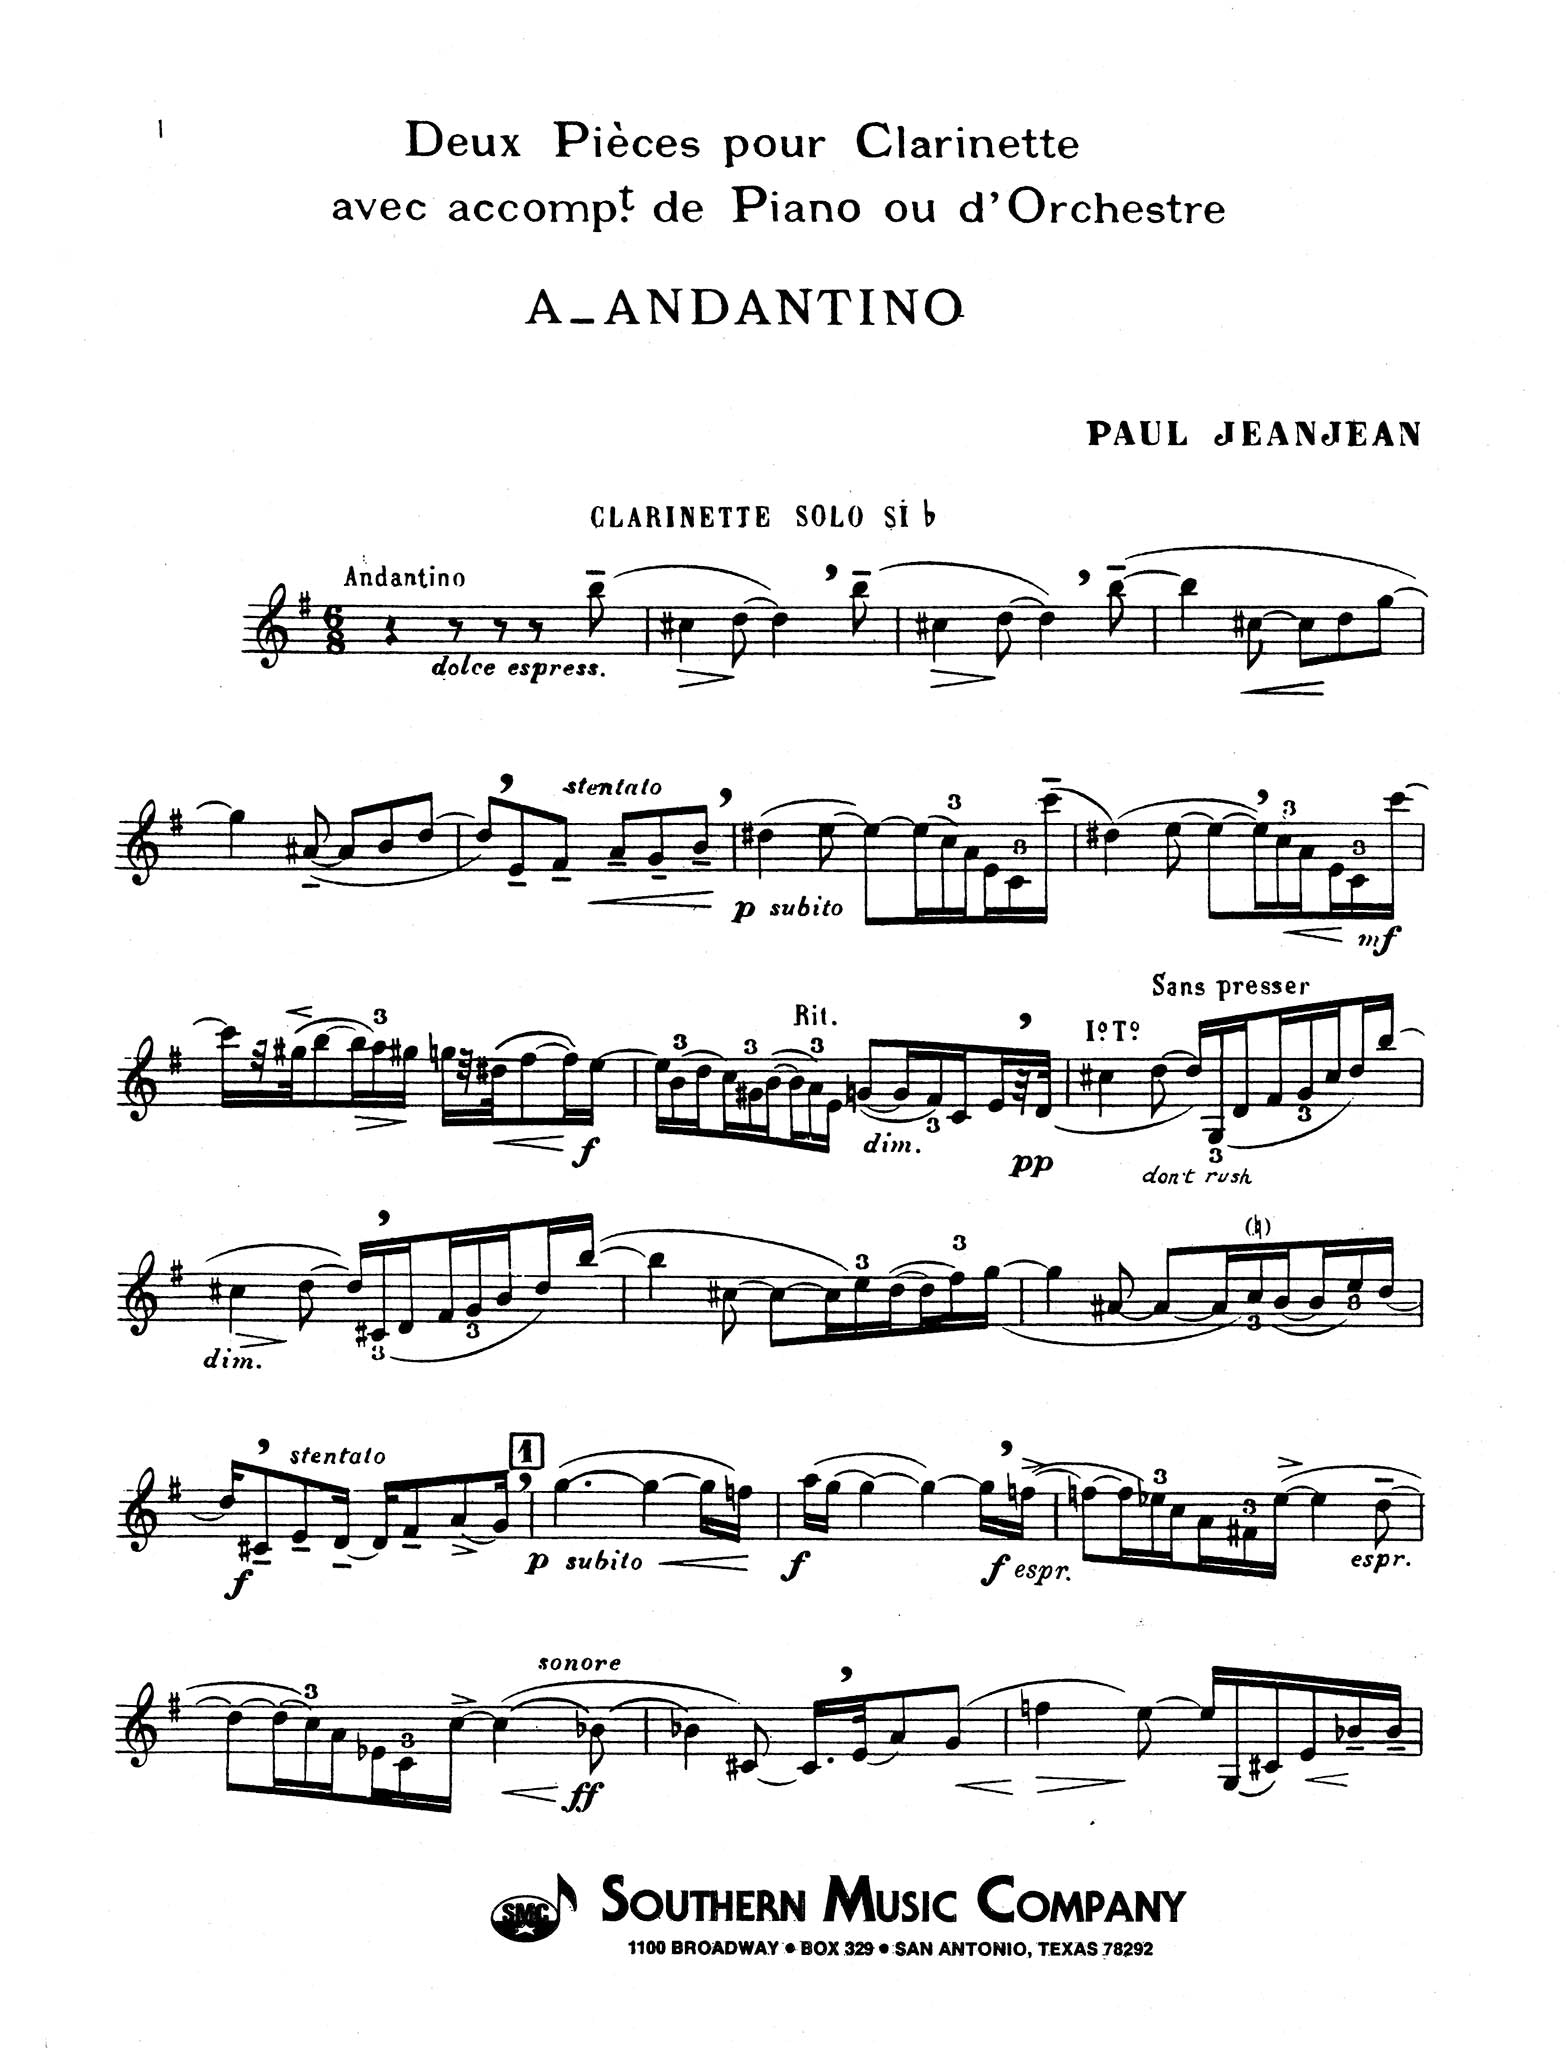 Andantino Clarinet part